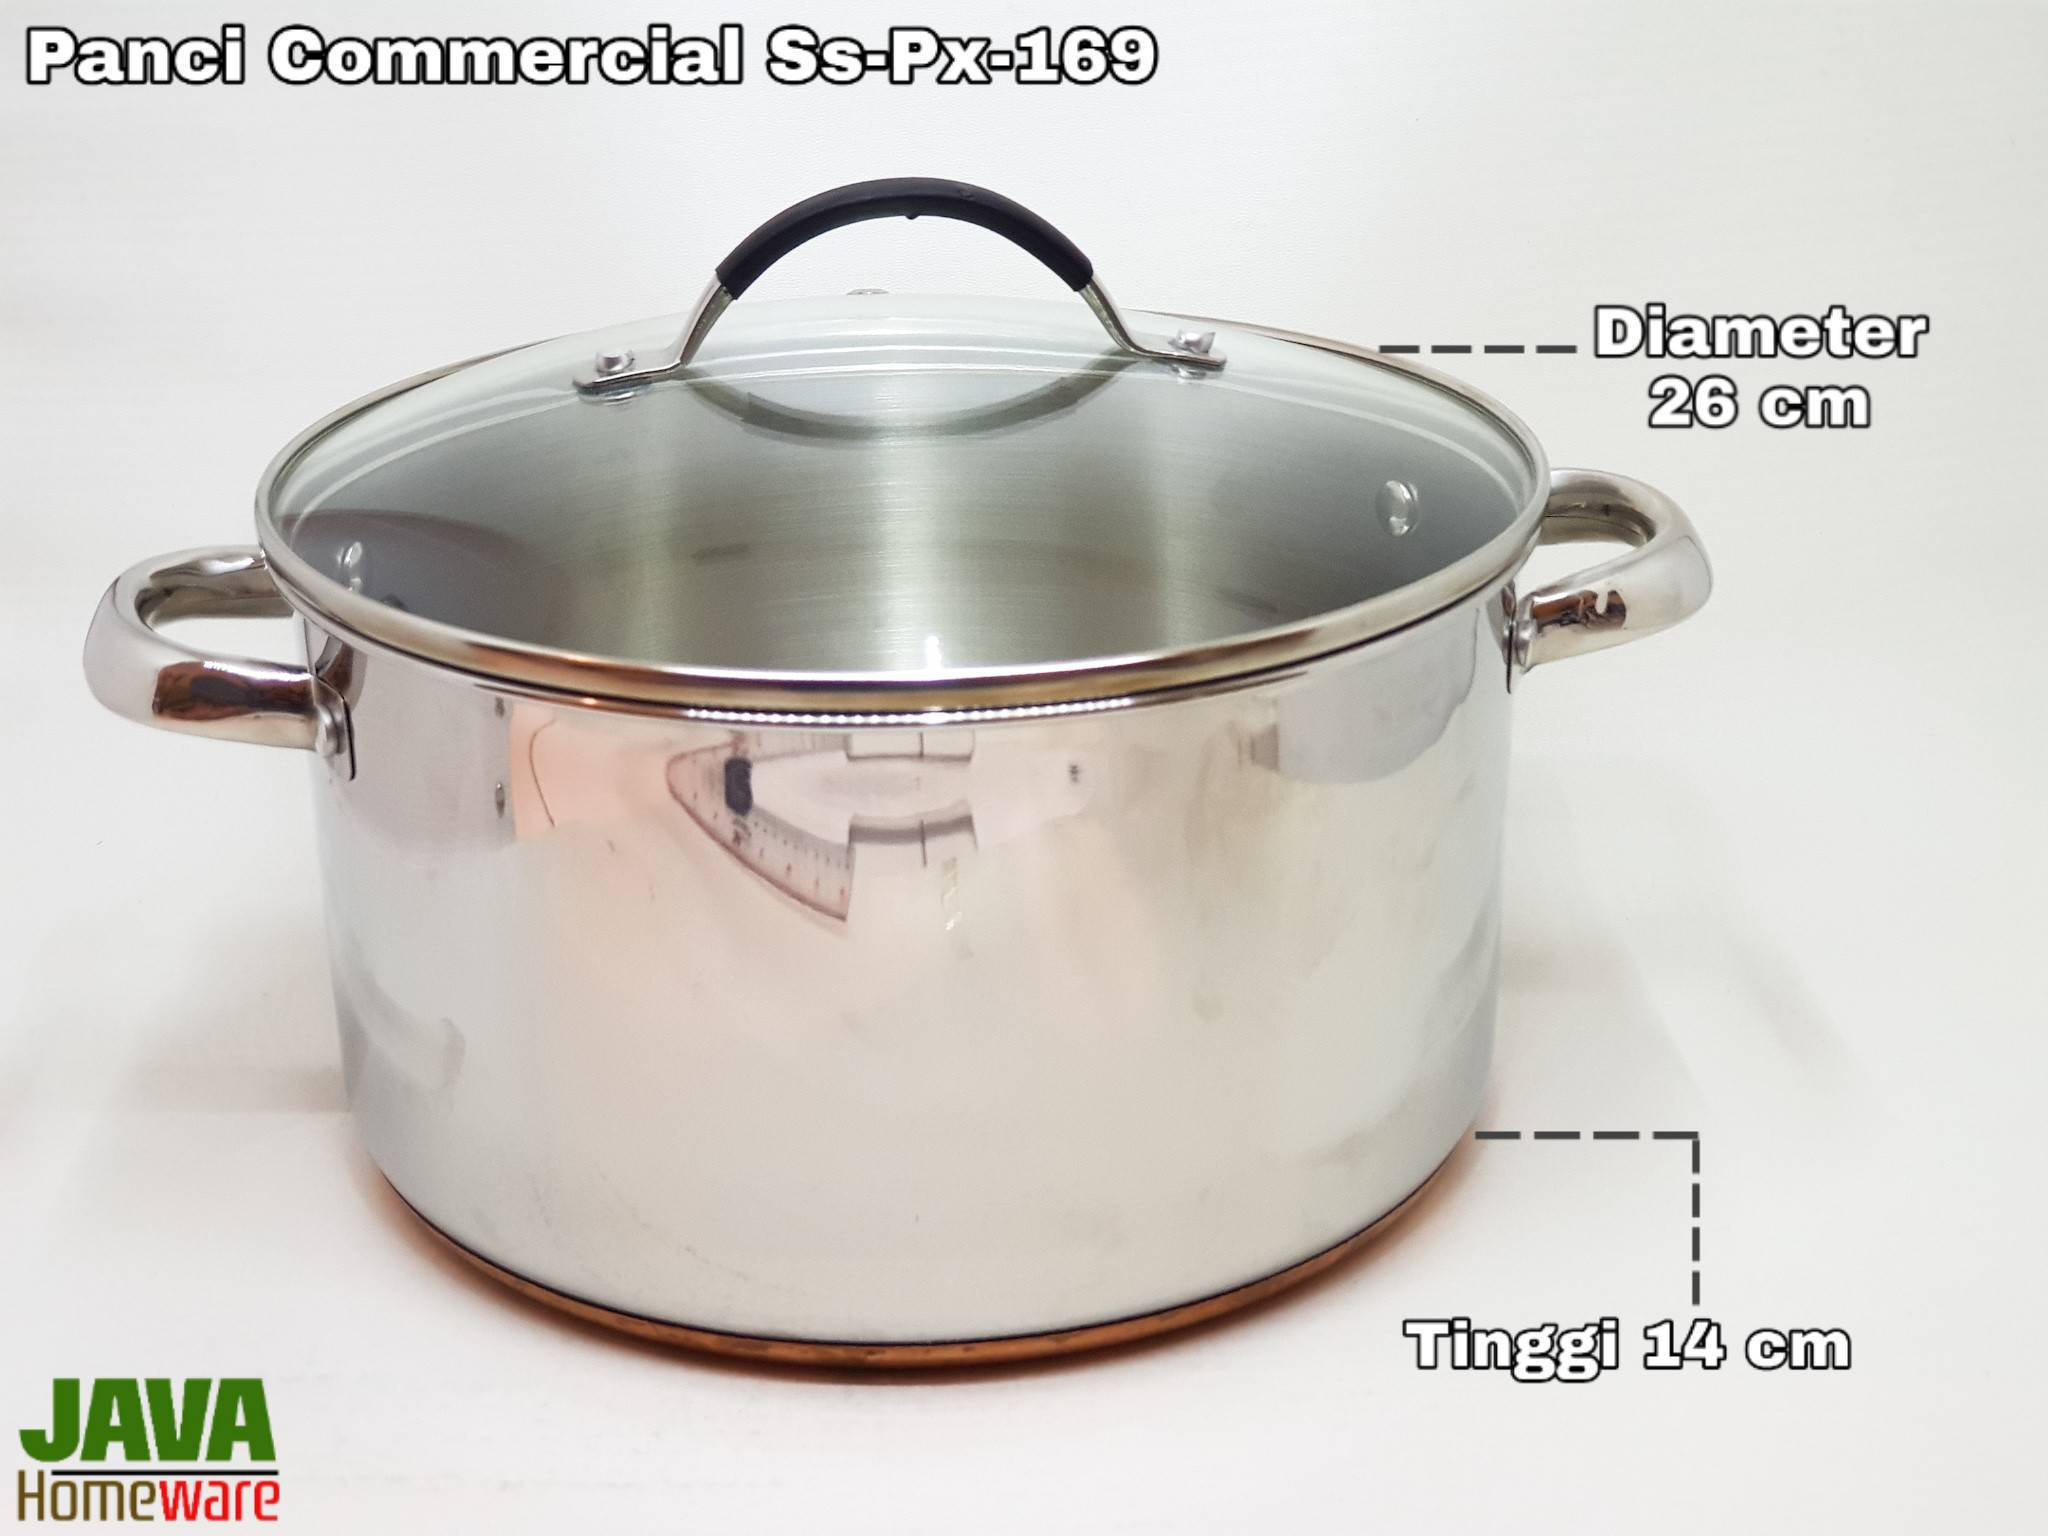 Panci Stainless Steel Commercial Multi Pot SS-PX-169